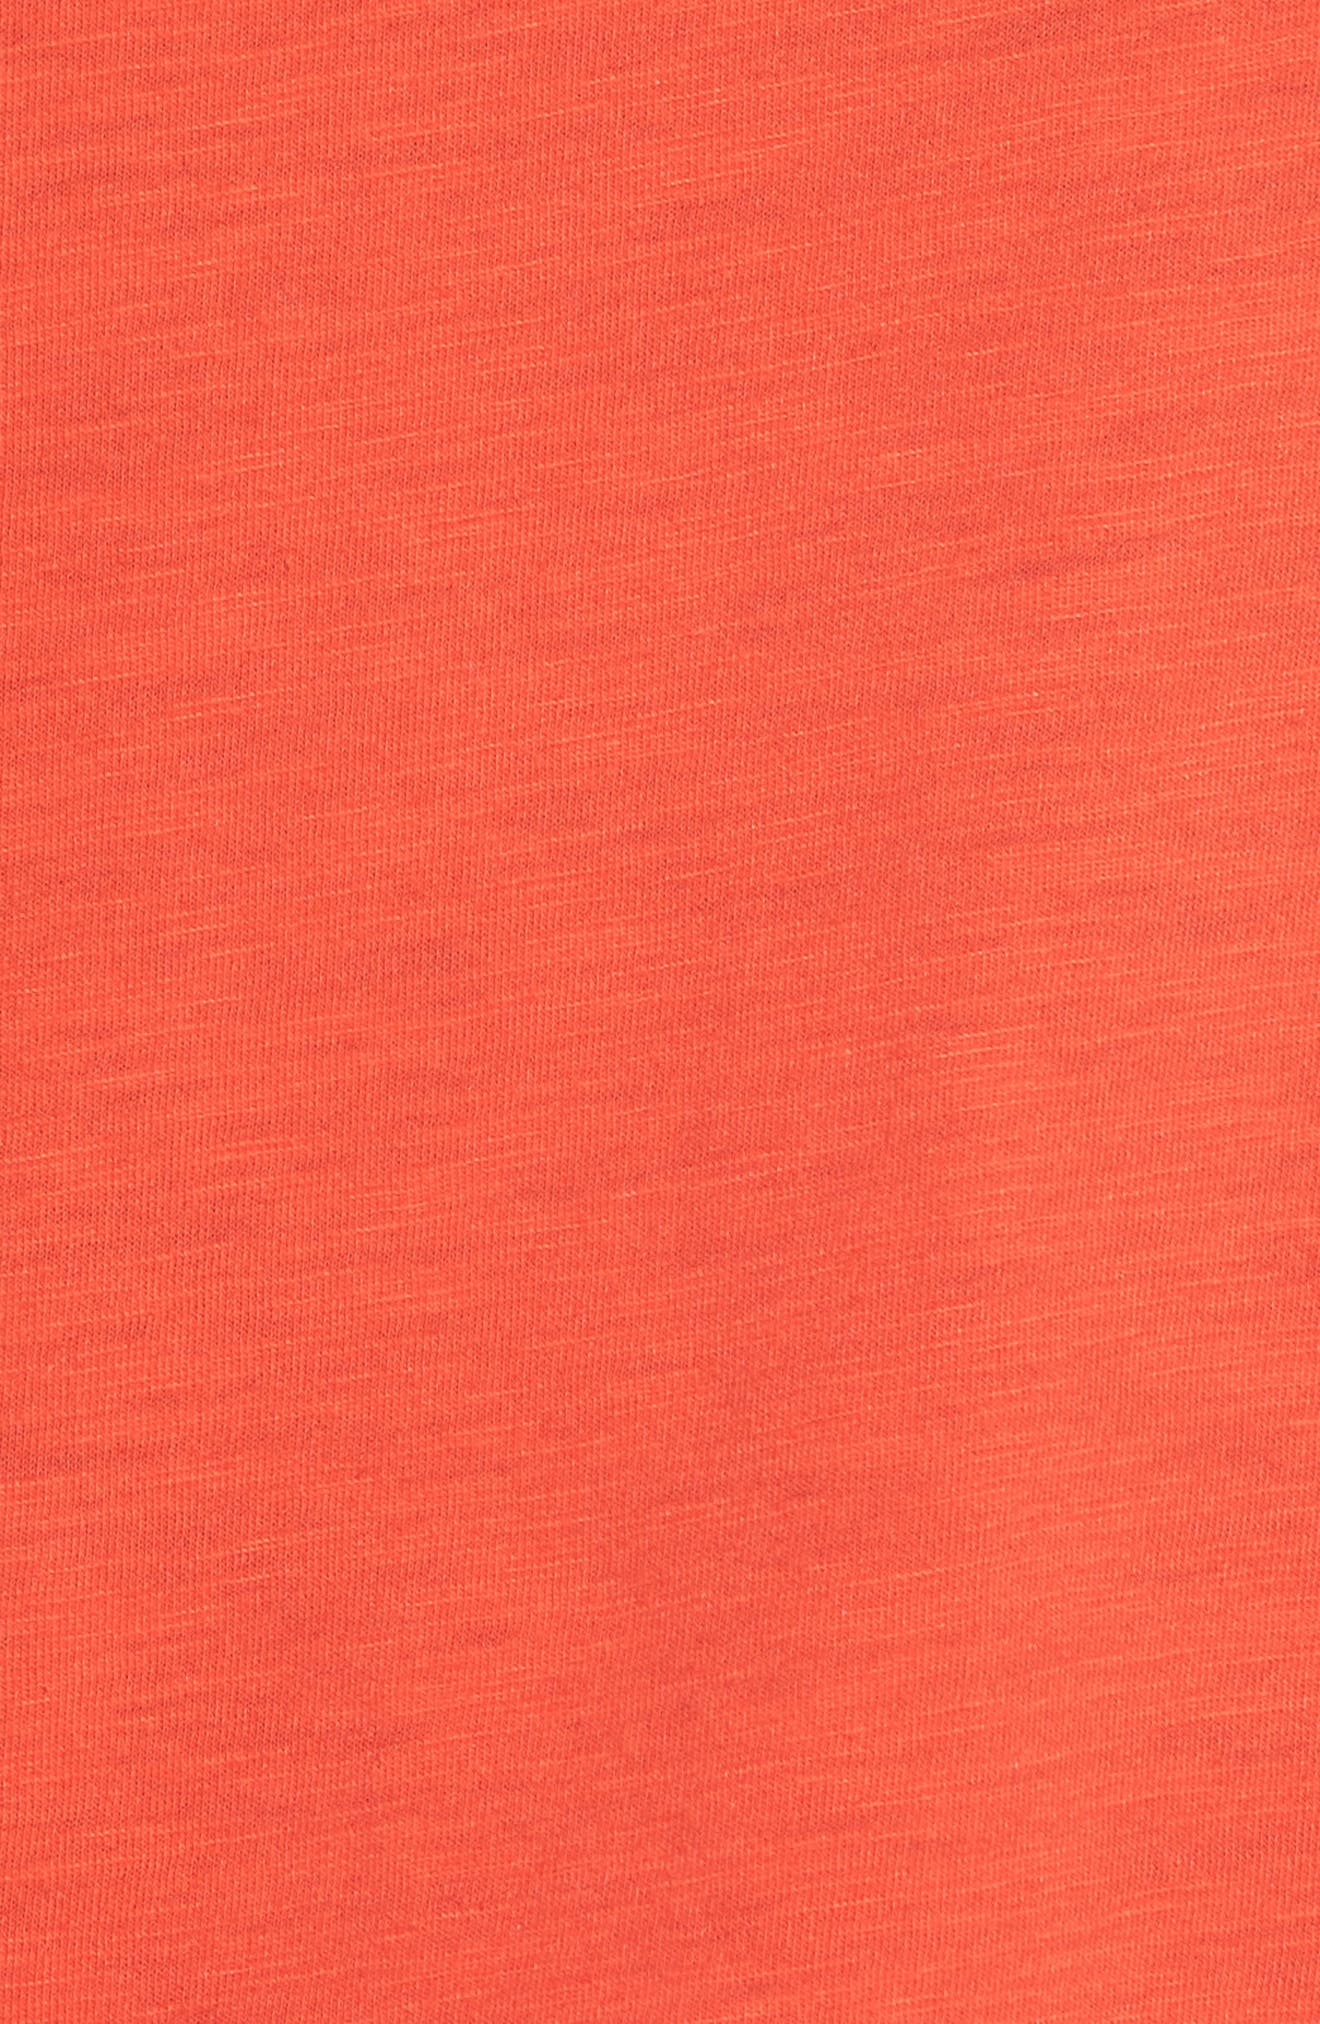 Football Tee,                             Alternate thumbnail 5, color,                             Candy Red